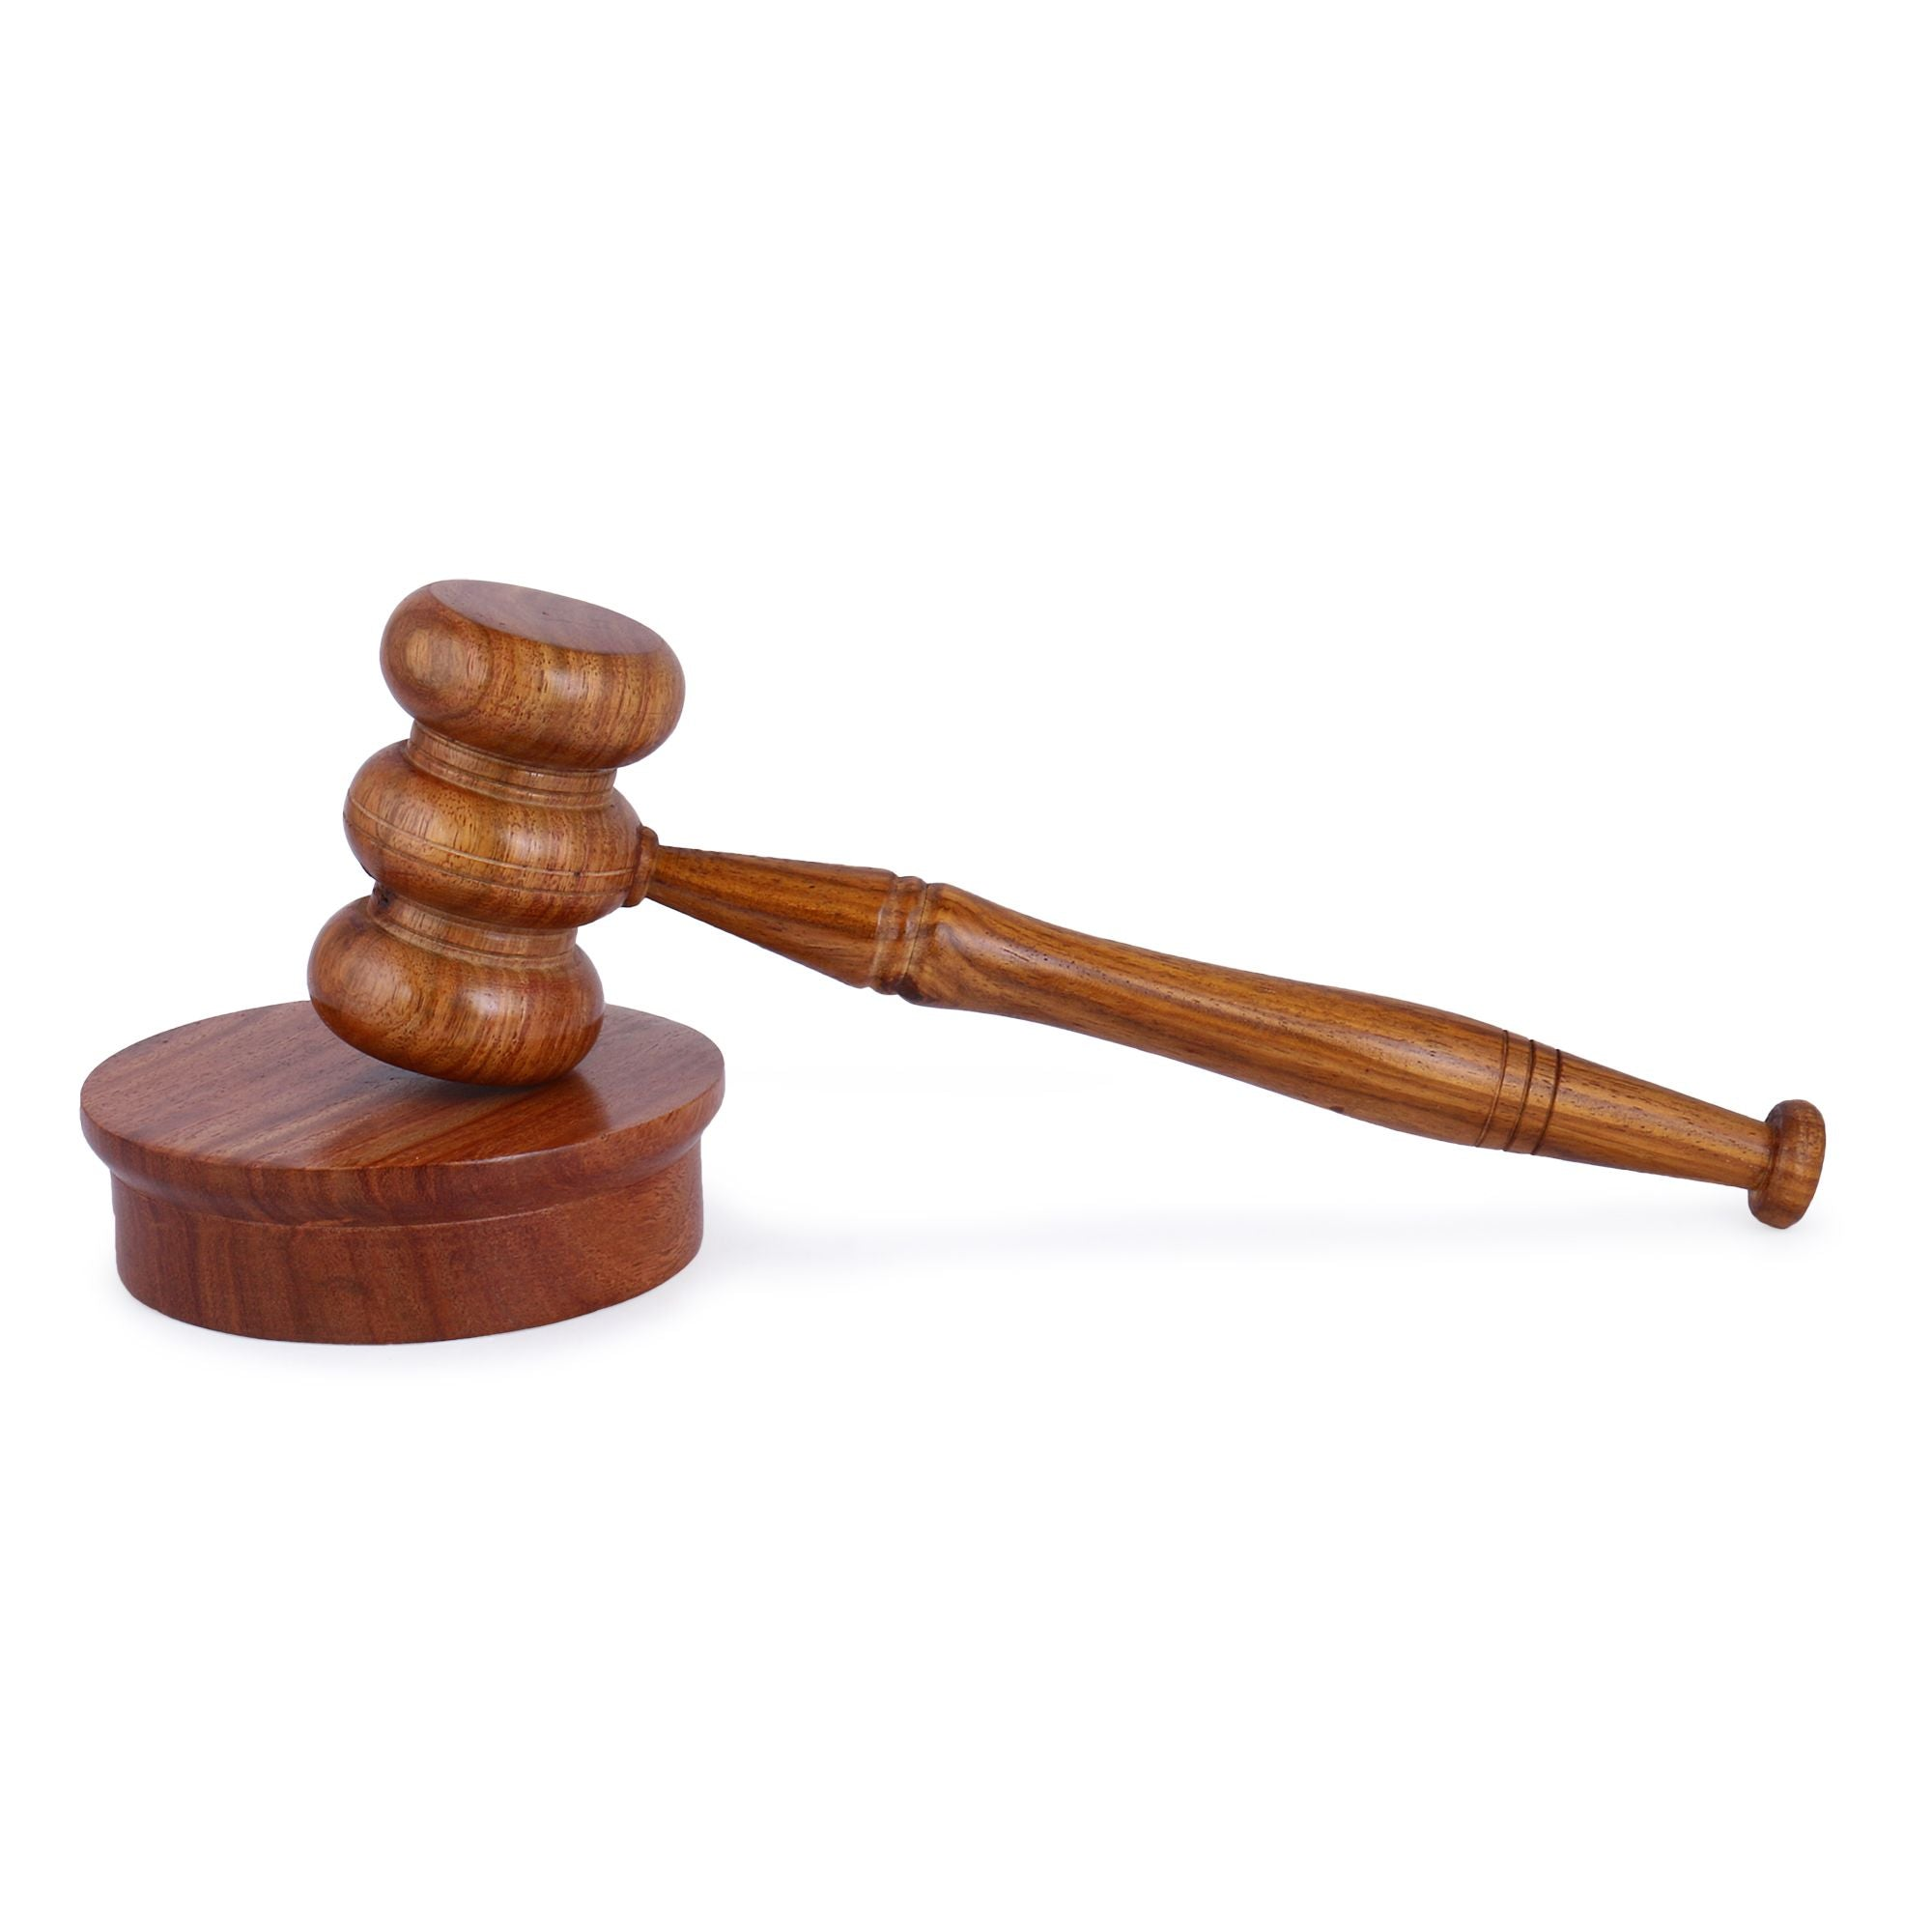 Gavel & Block Wooden Set